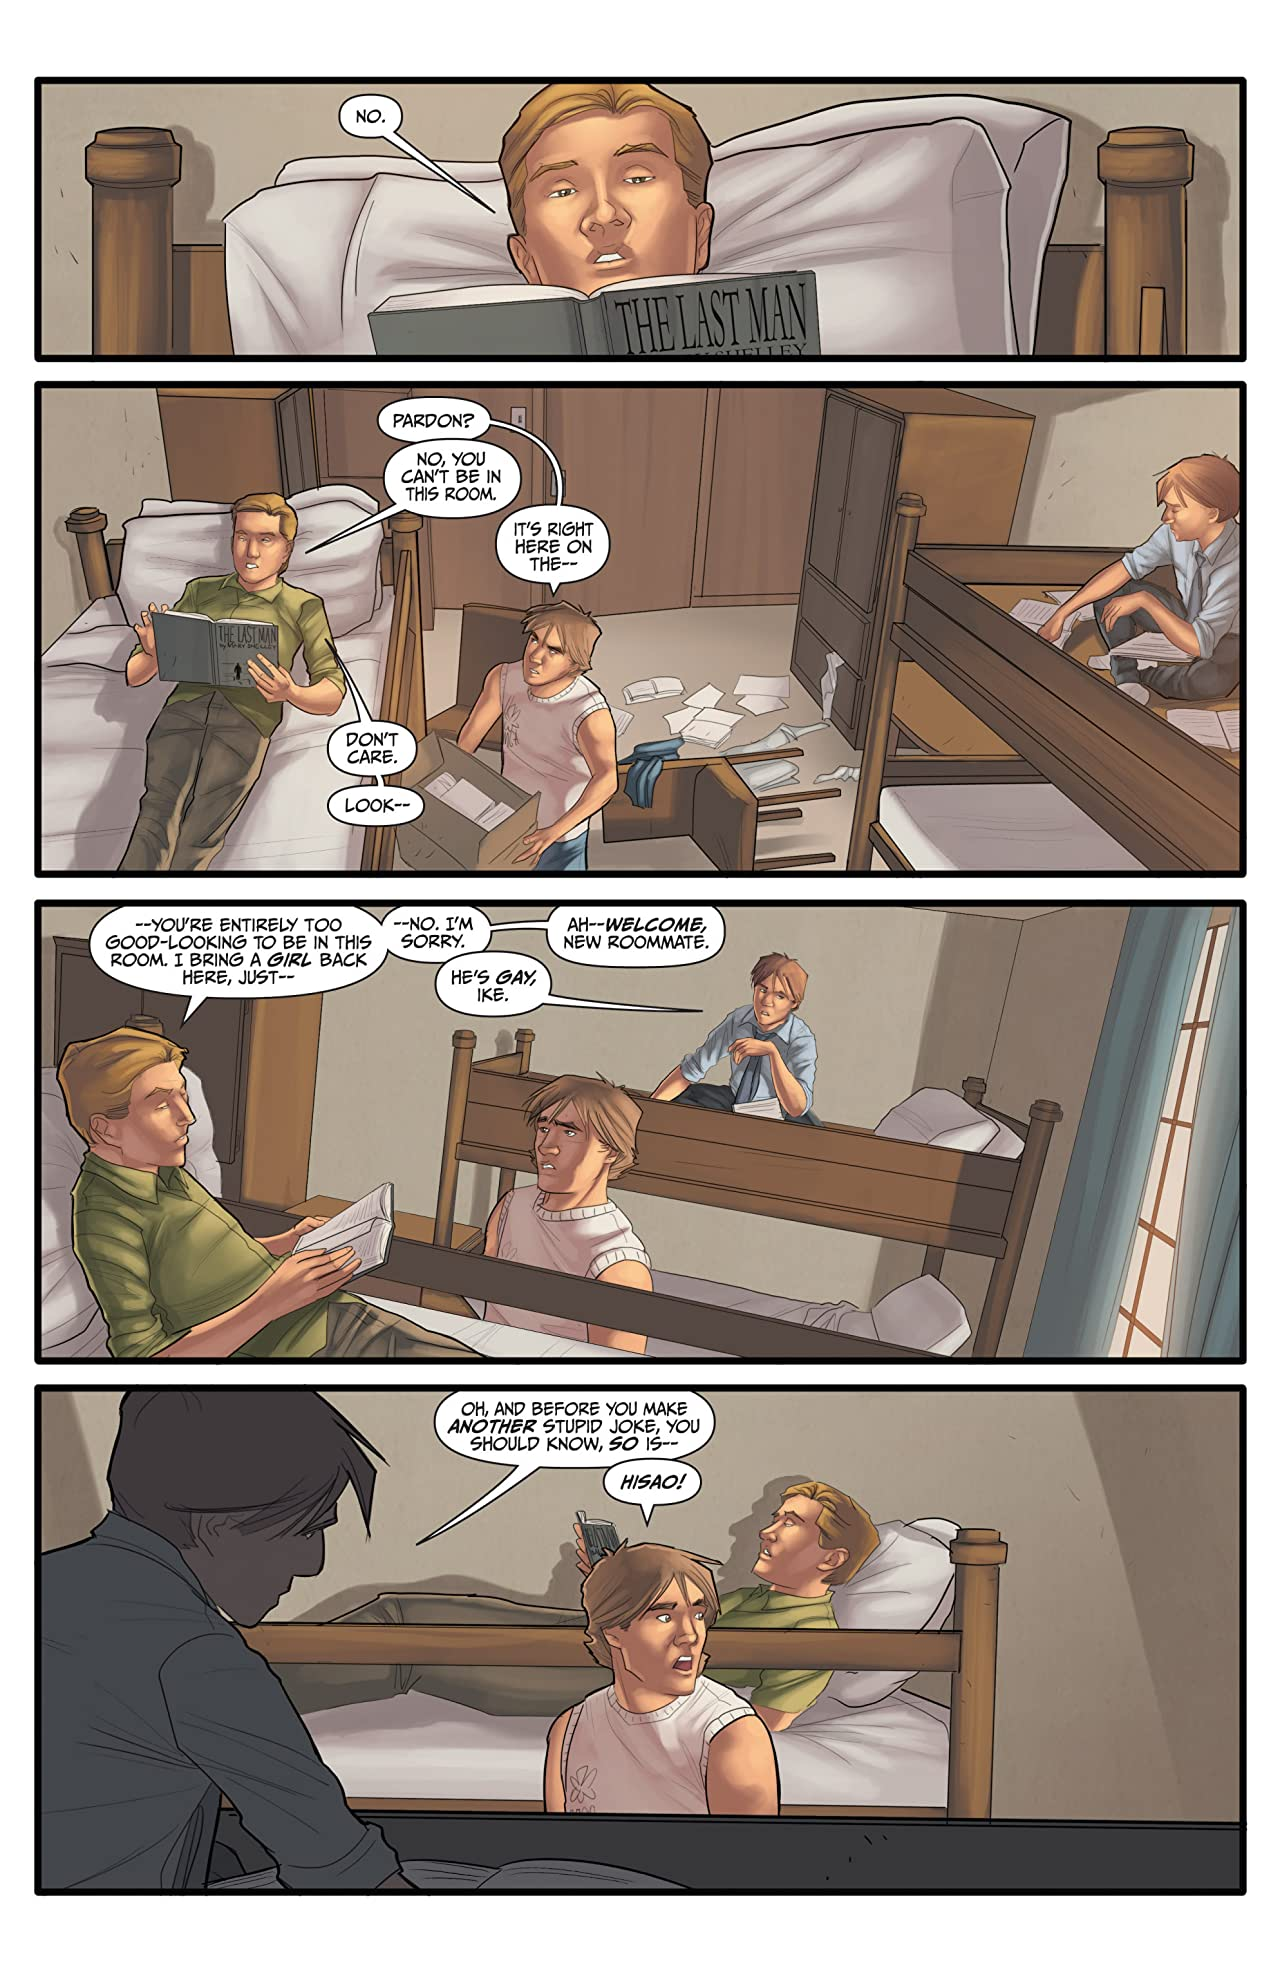 Morning Glories #33